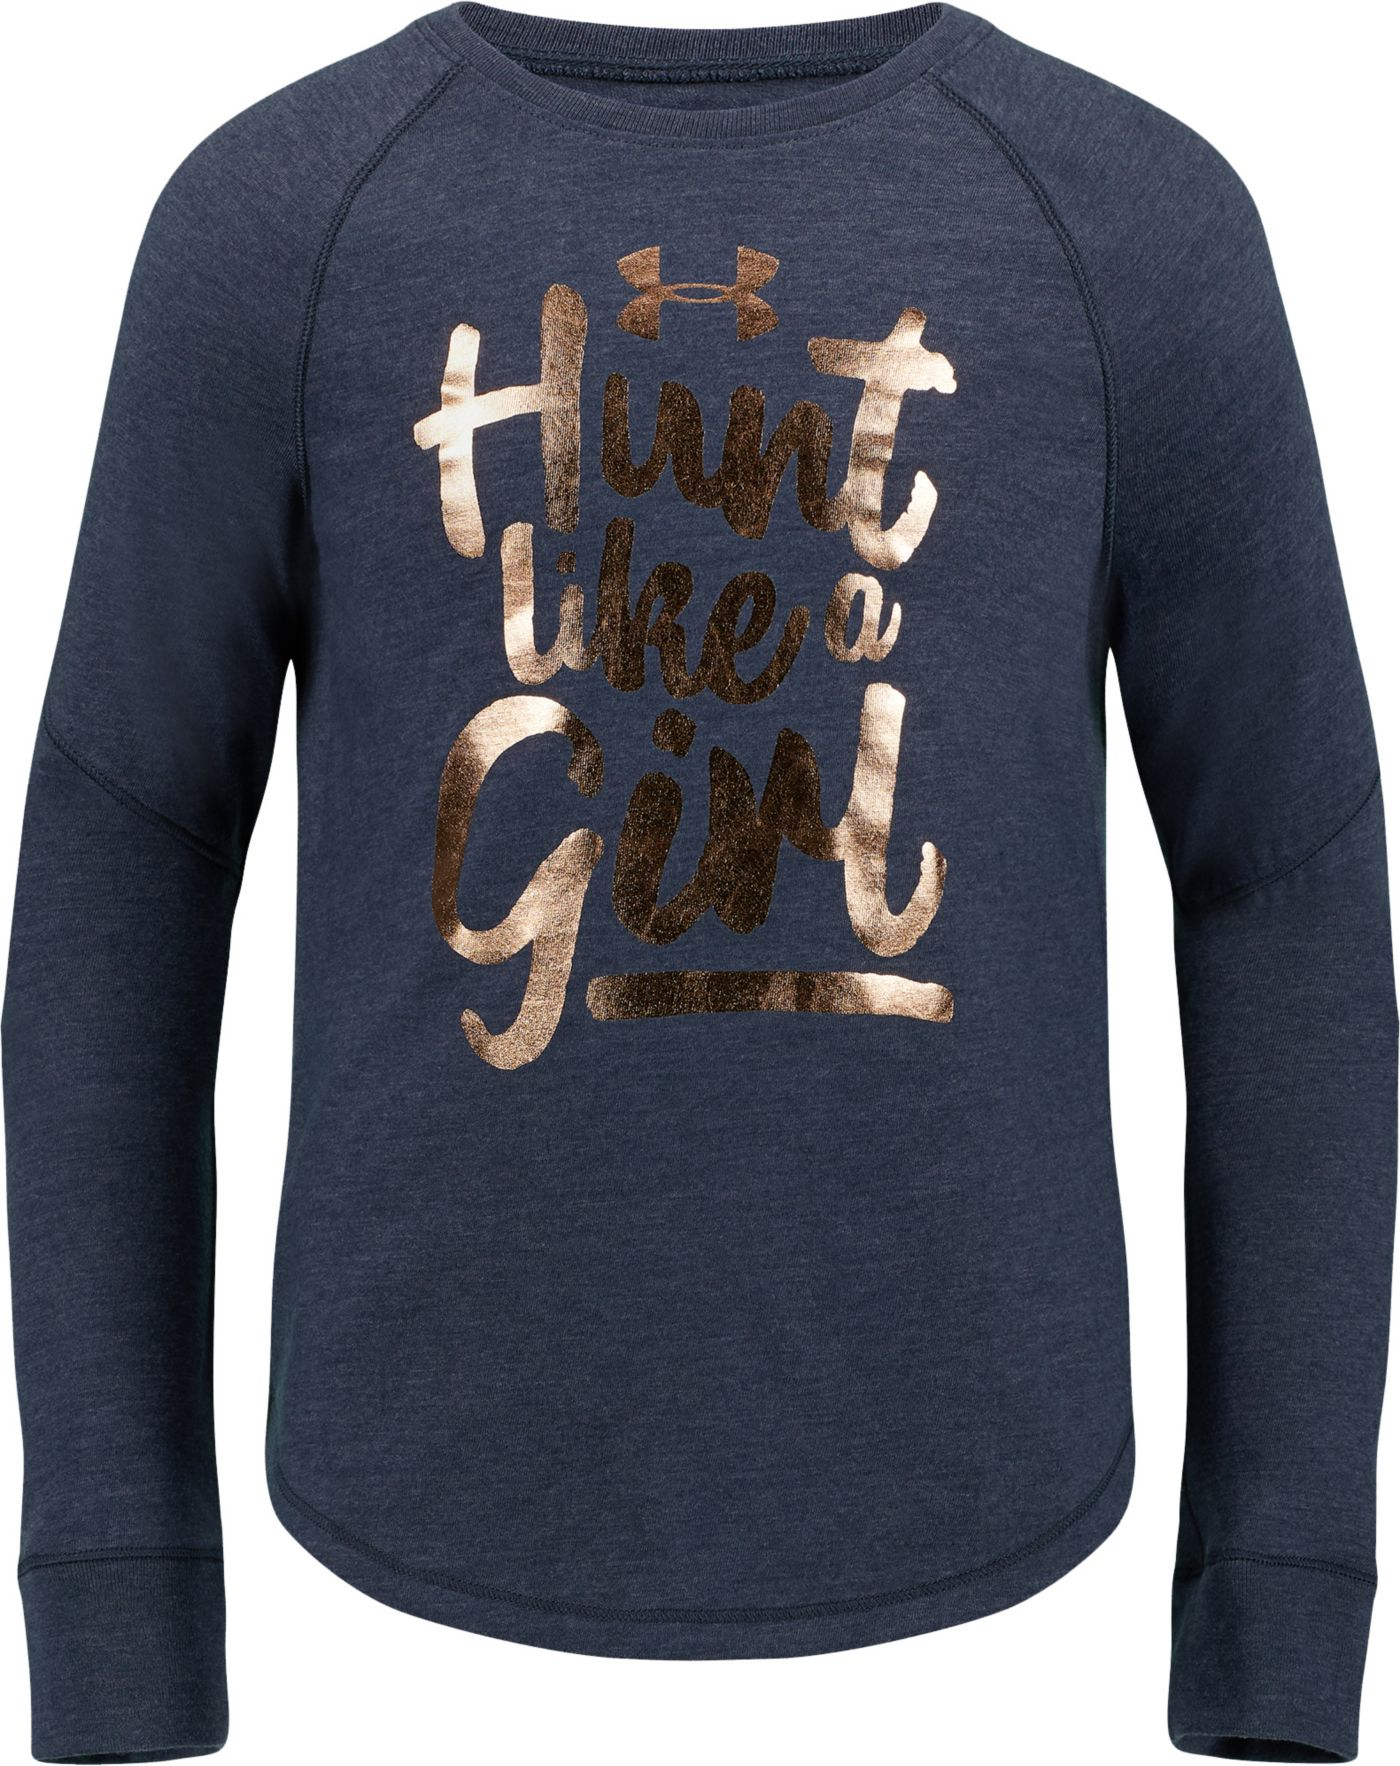 Under Armour Girls' Hunt Like a Girl Long Sleeve T-Shirt